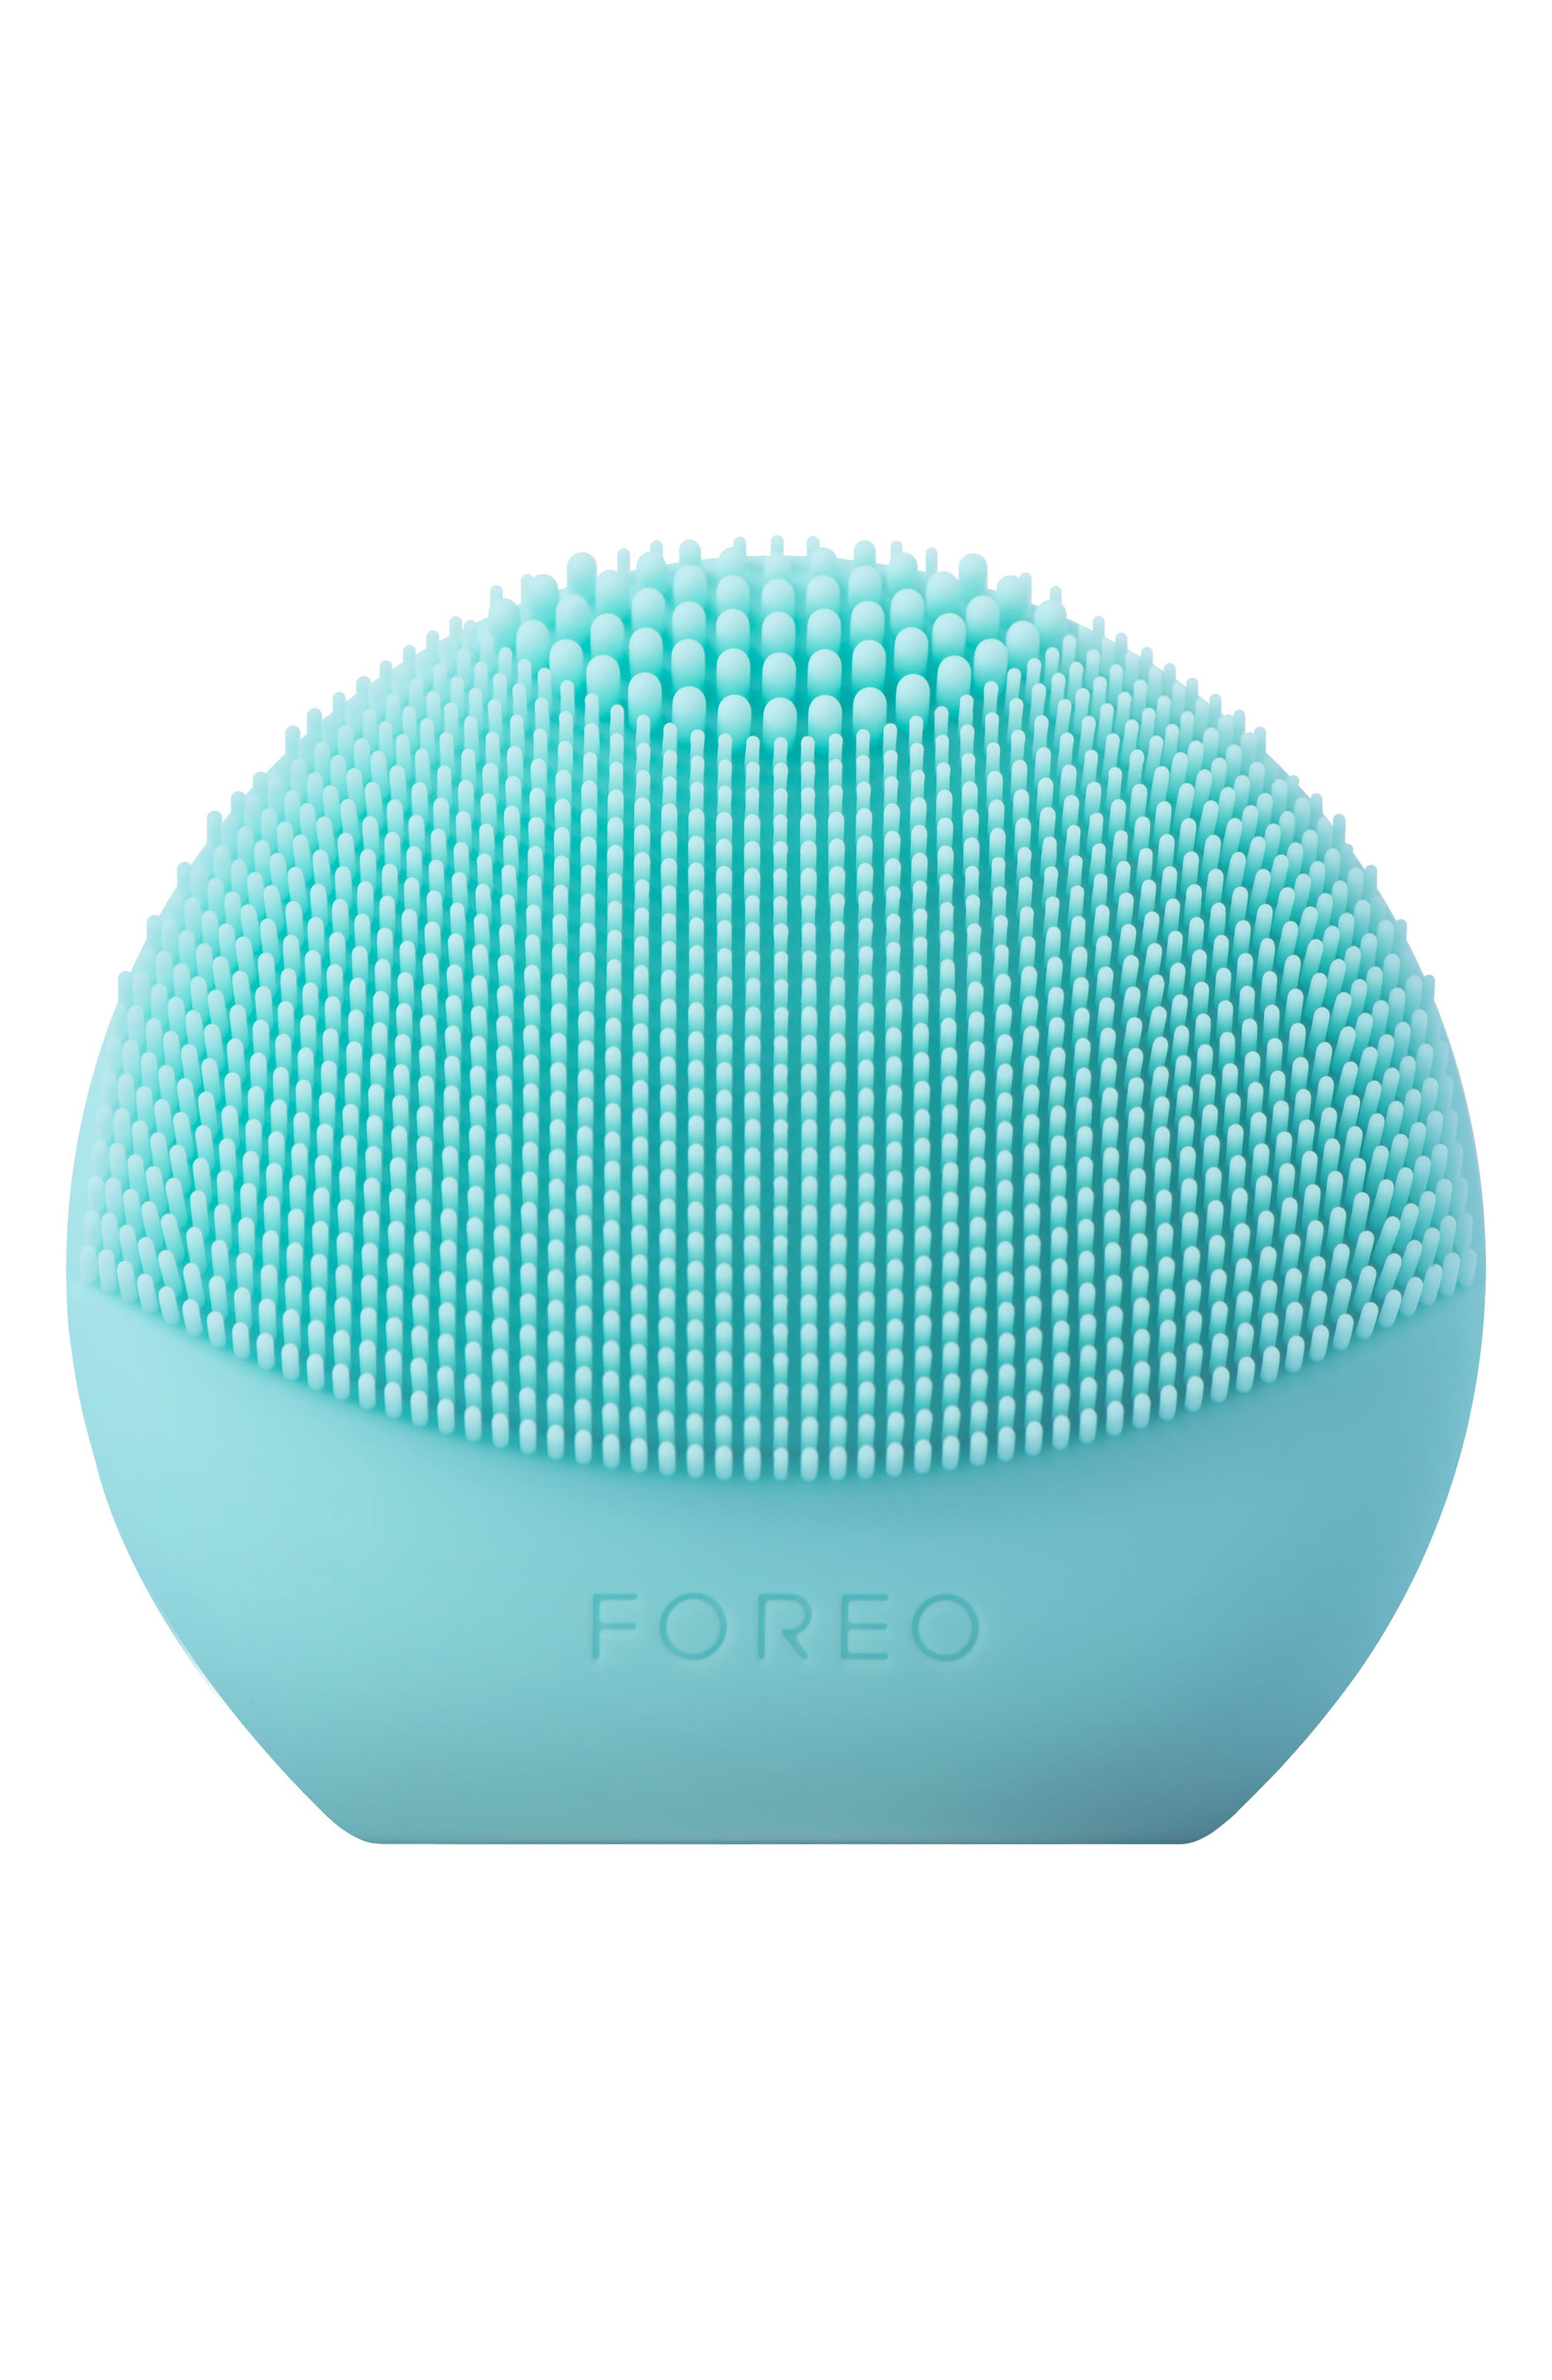 LUNA<sup>™</sup> fofo Skin Analysis Facial Cleansing Brush, Main, color, MINT